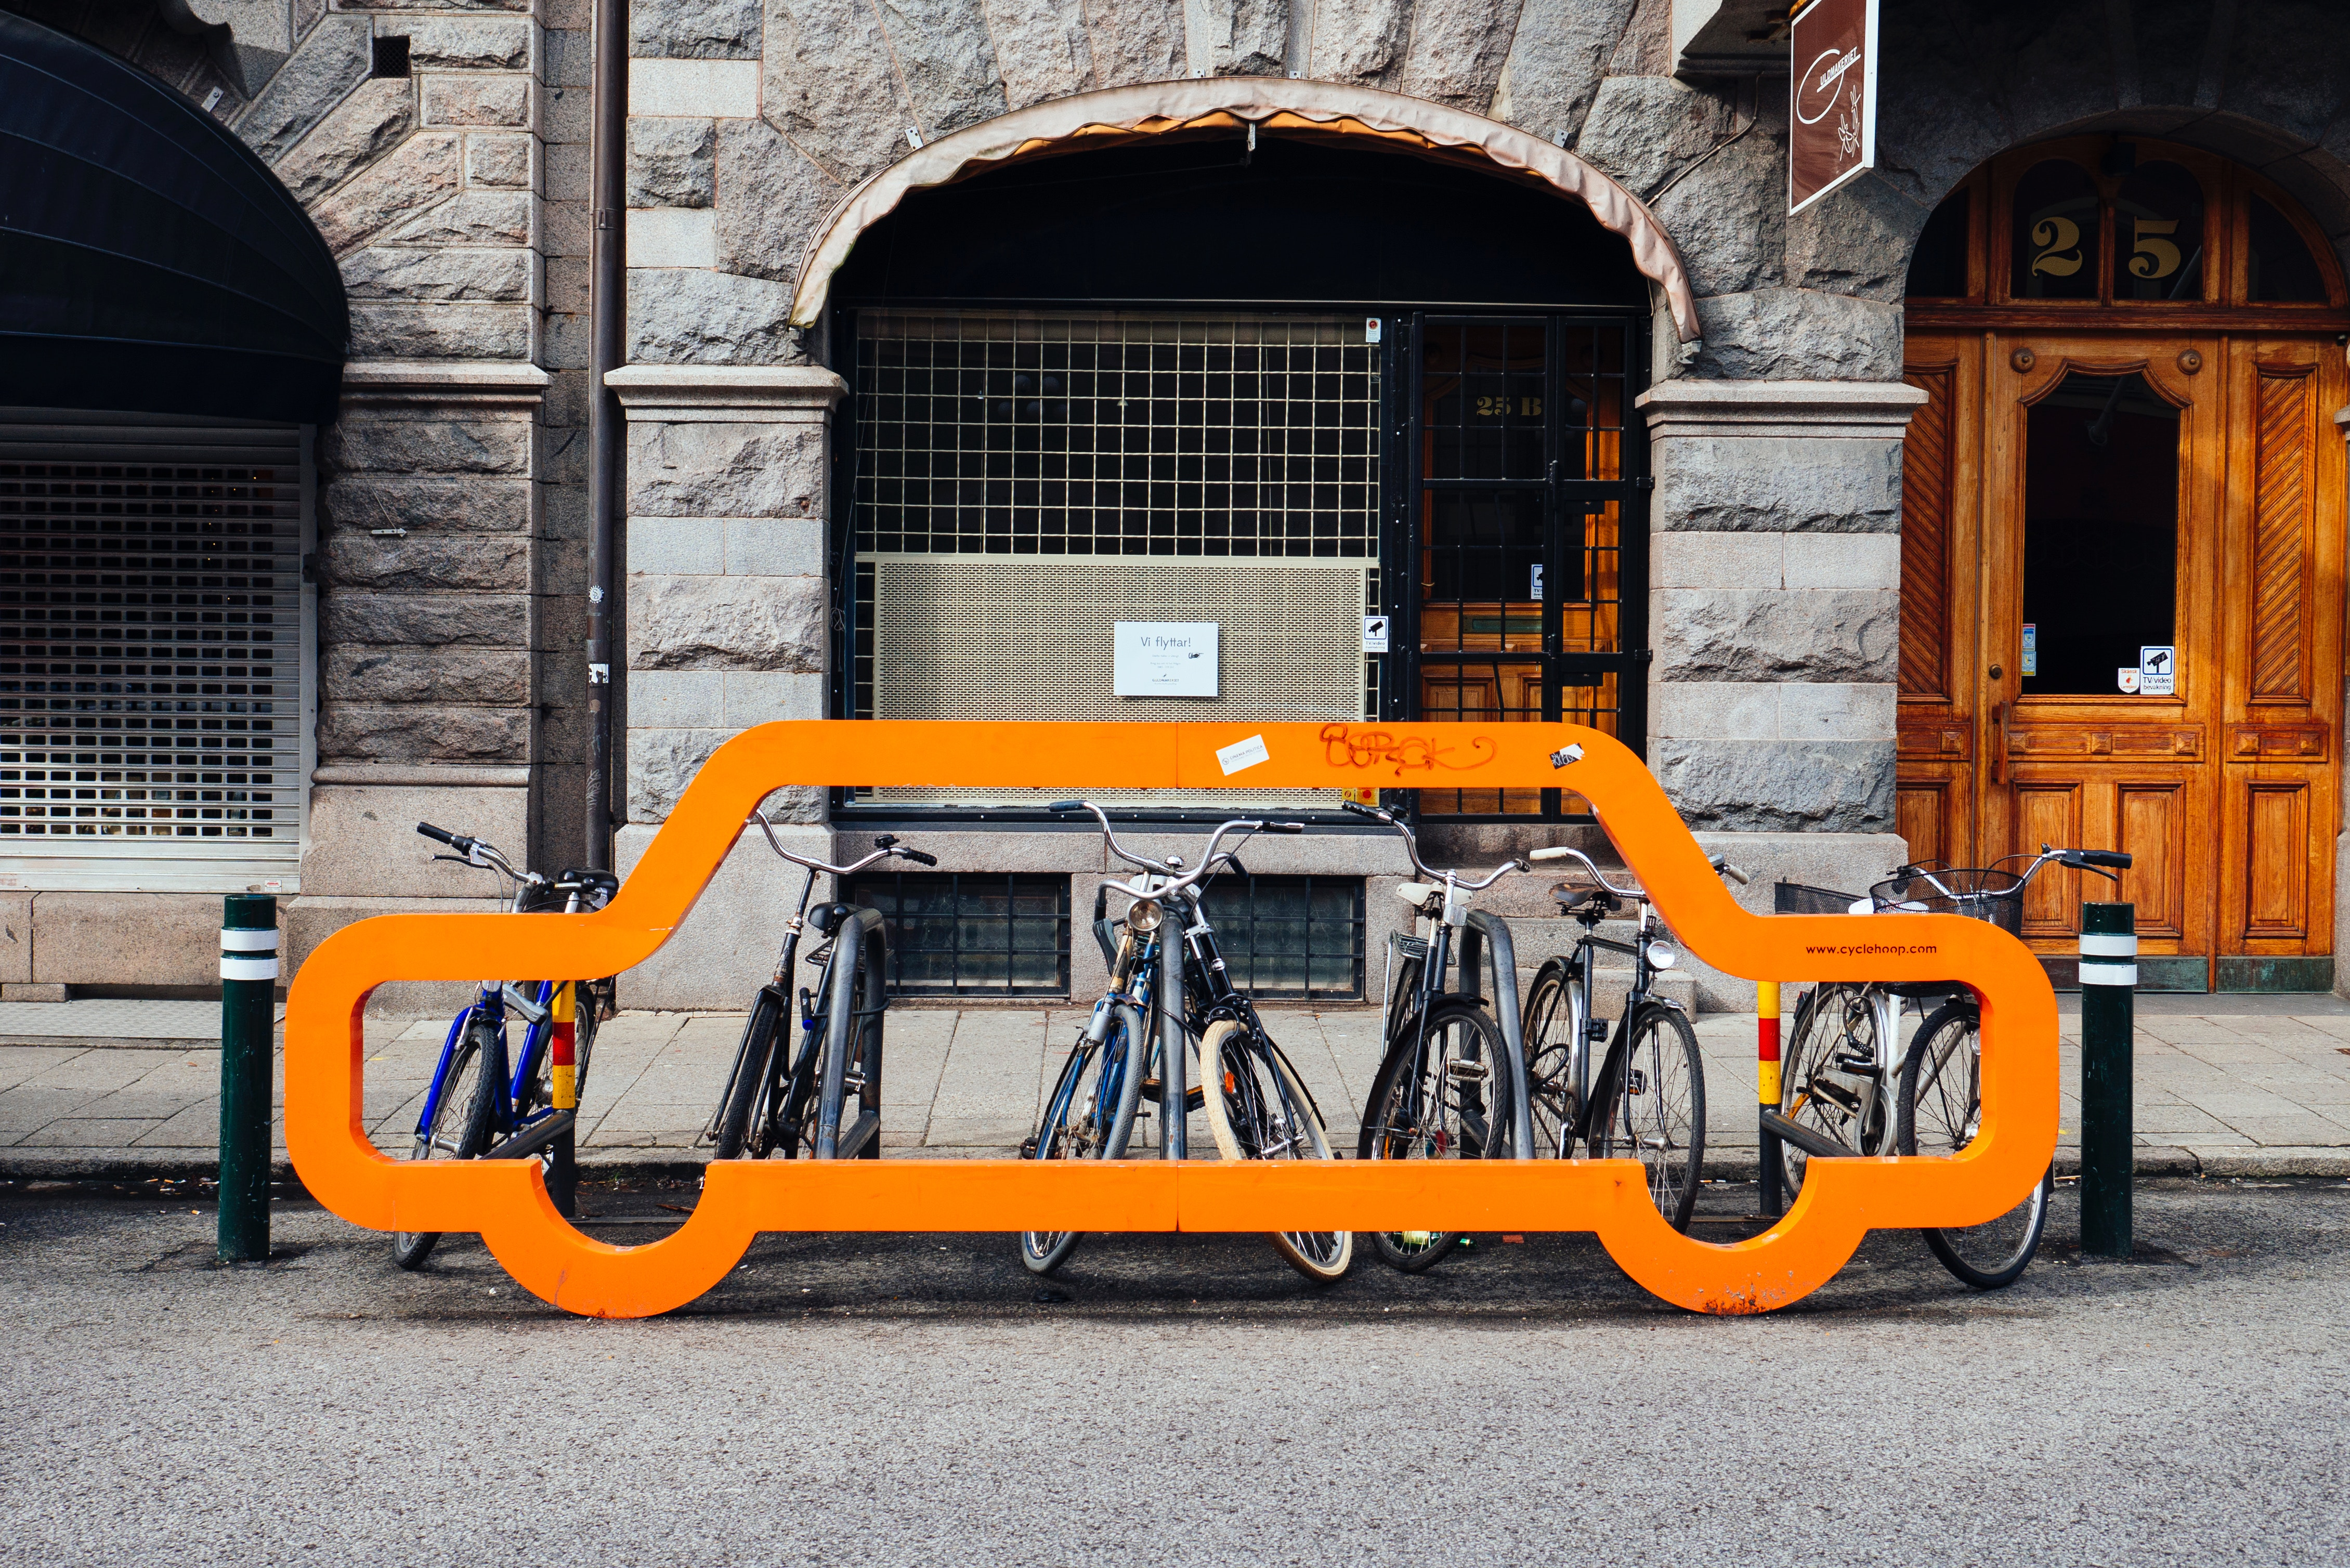 Designated curb management spaces for bikes in a city